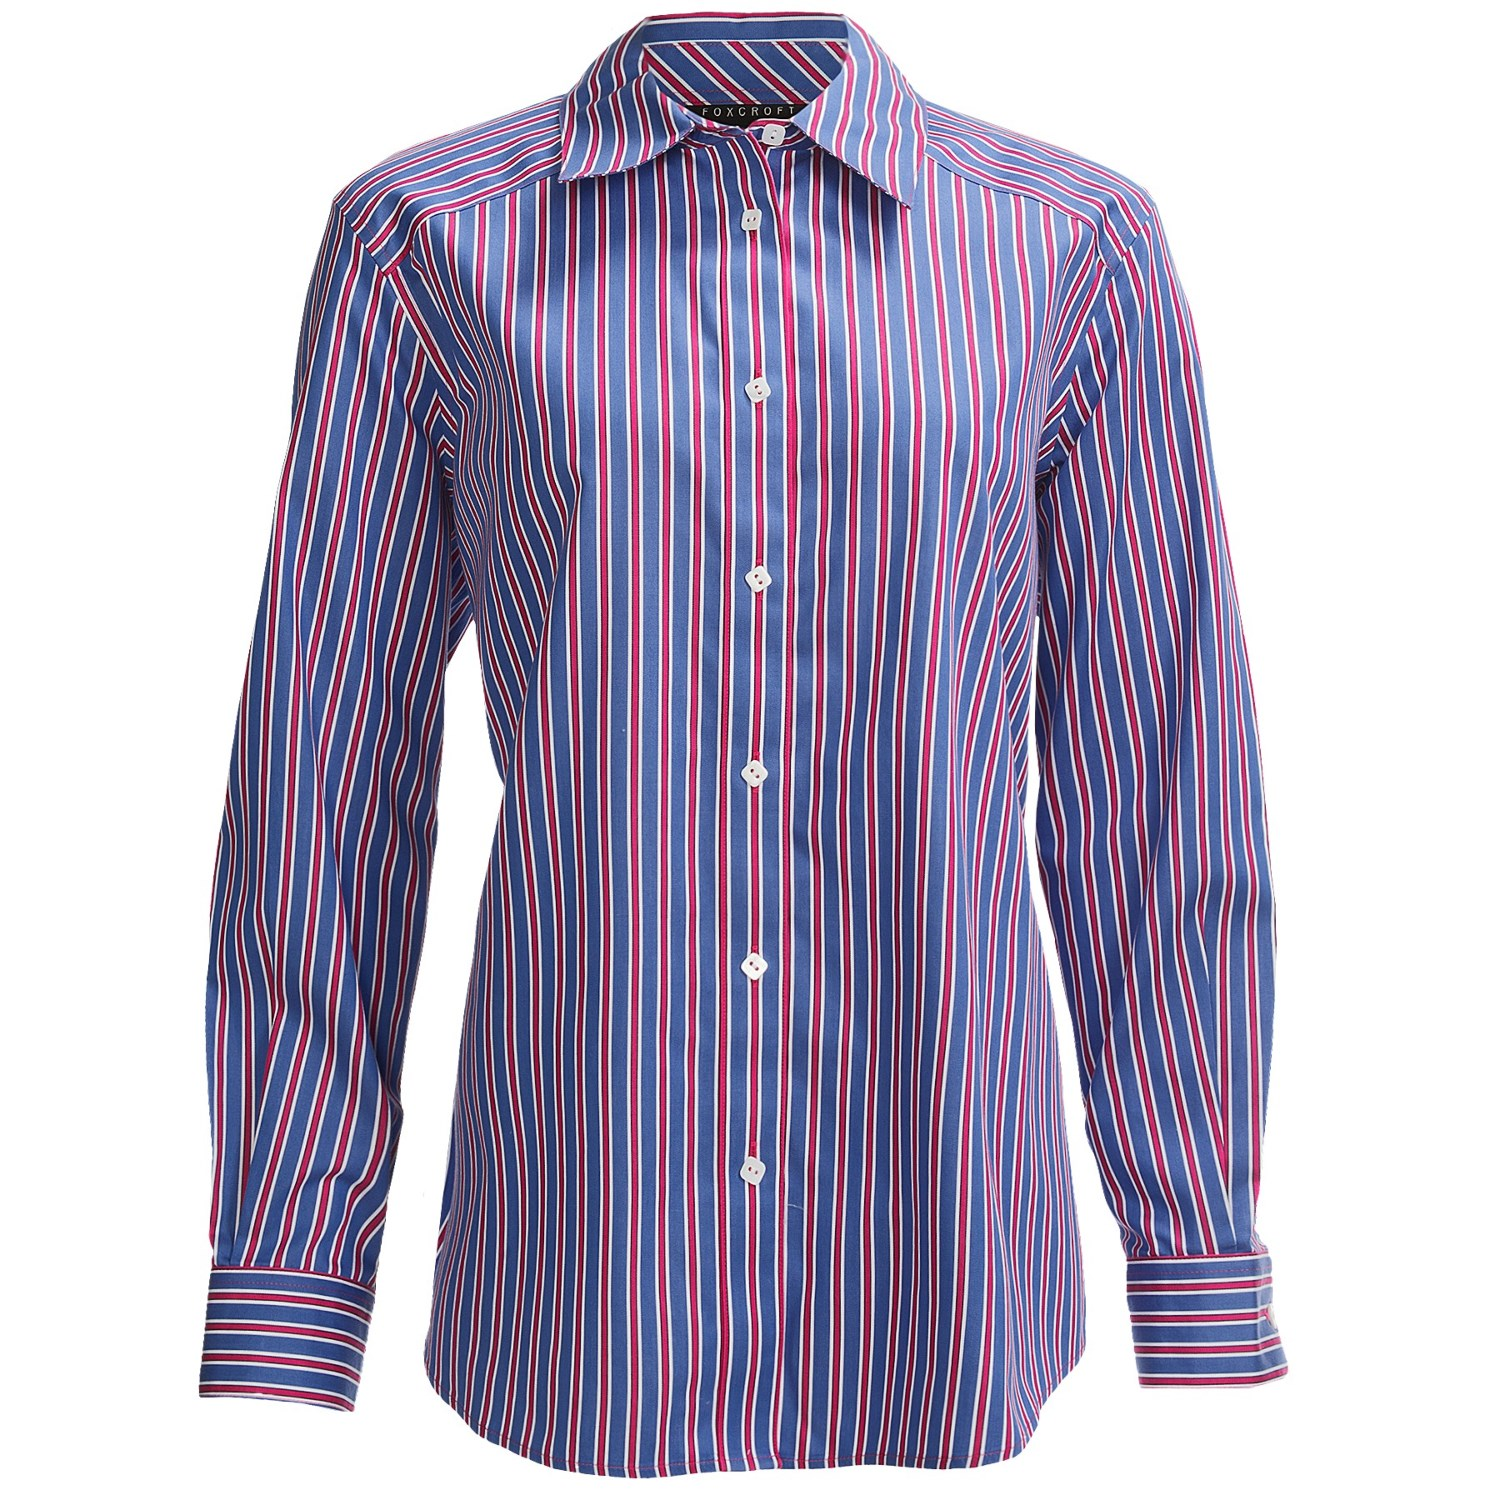 Foxcroft shaped multi stripe shirt for plus size women Wrinkle free shirts for women